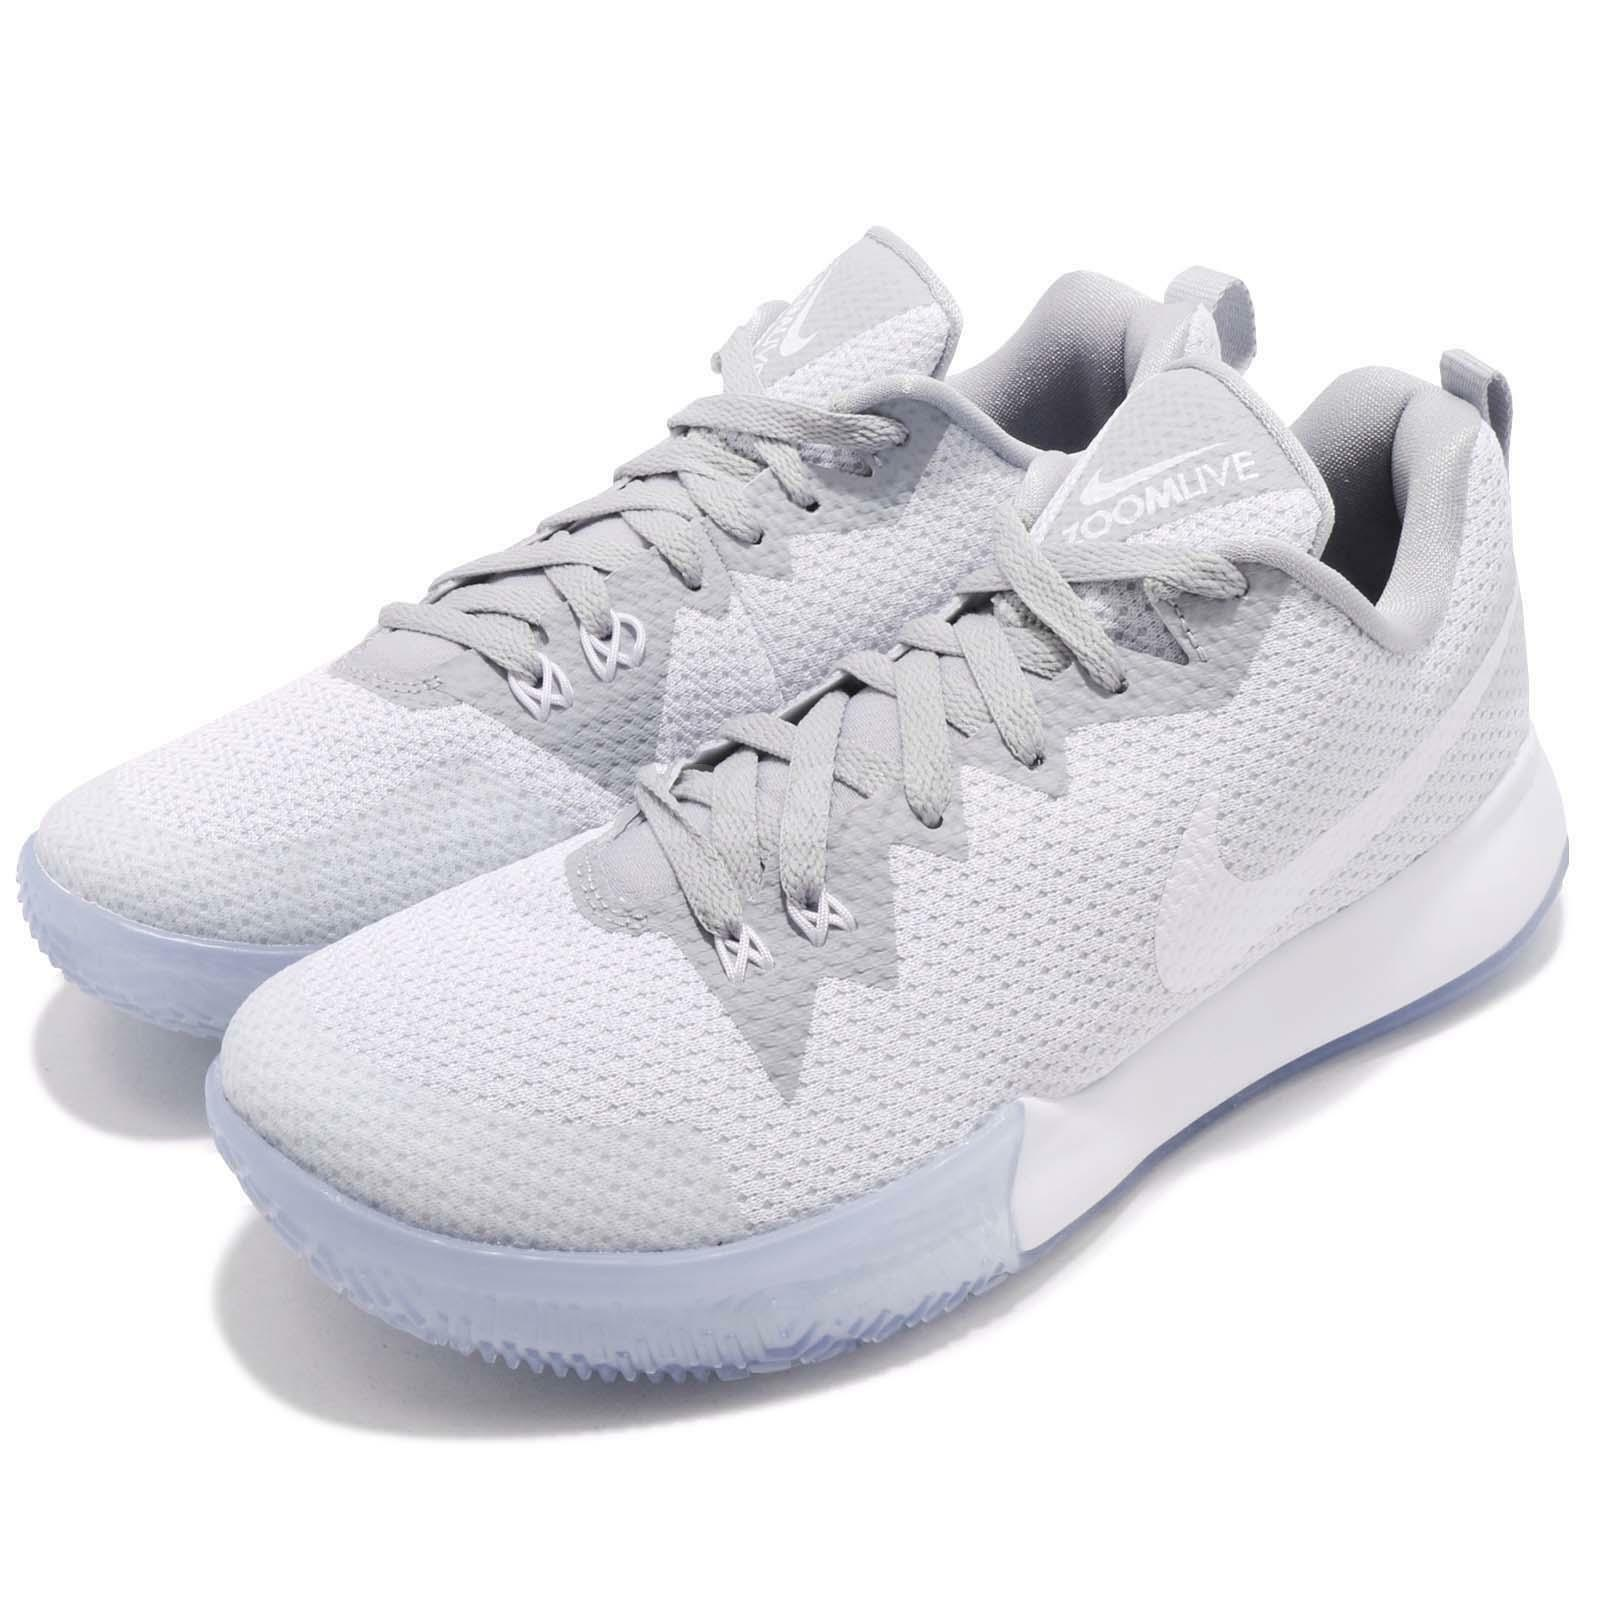 Nike Zoom Live II EP 2 White Wolf Grey Men Basketball Sneakers AH7567-101